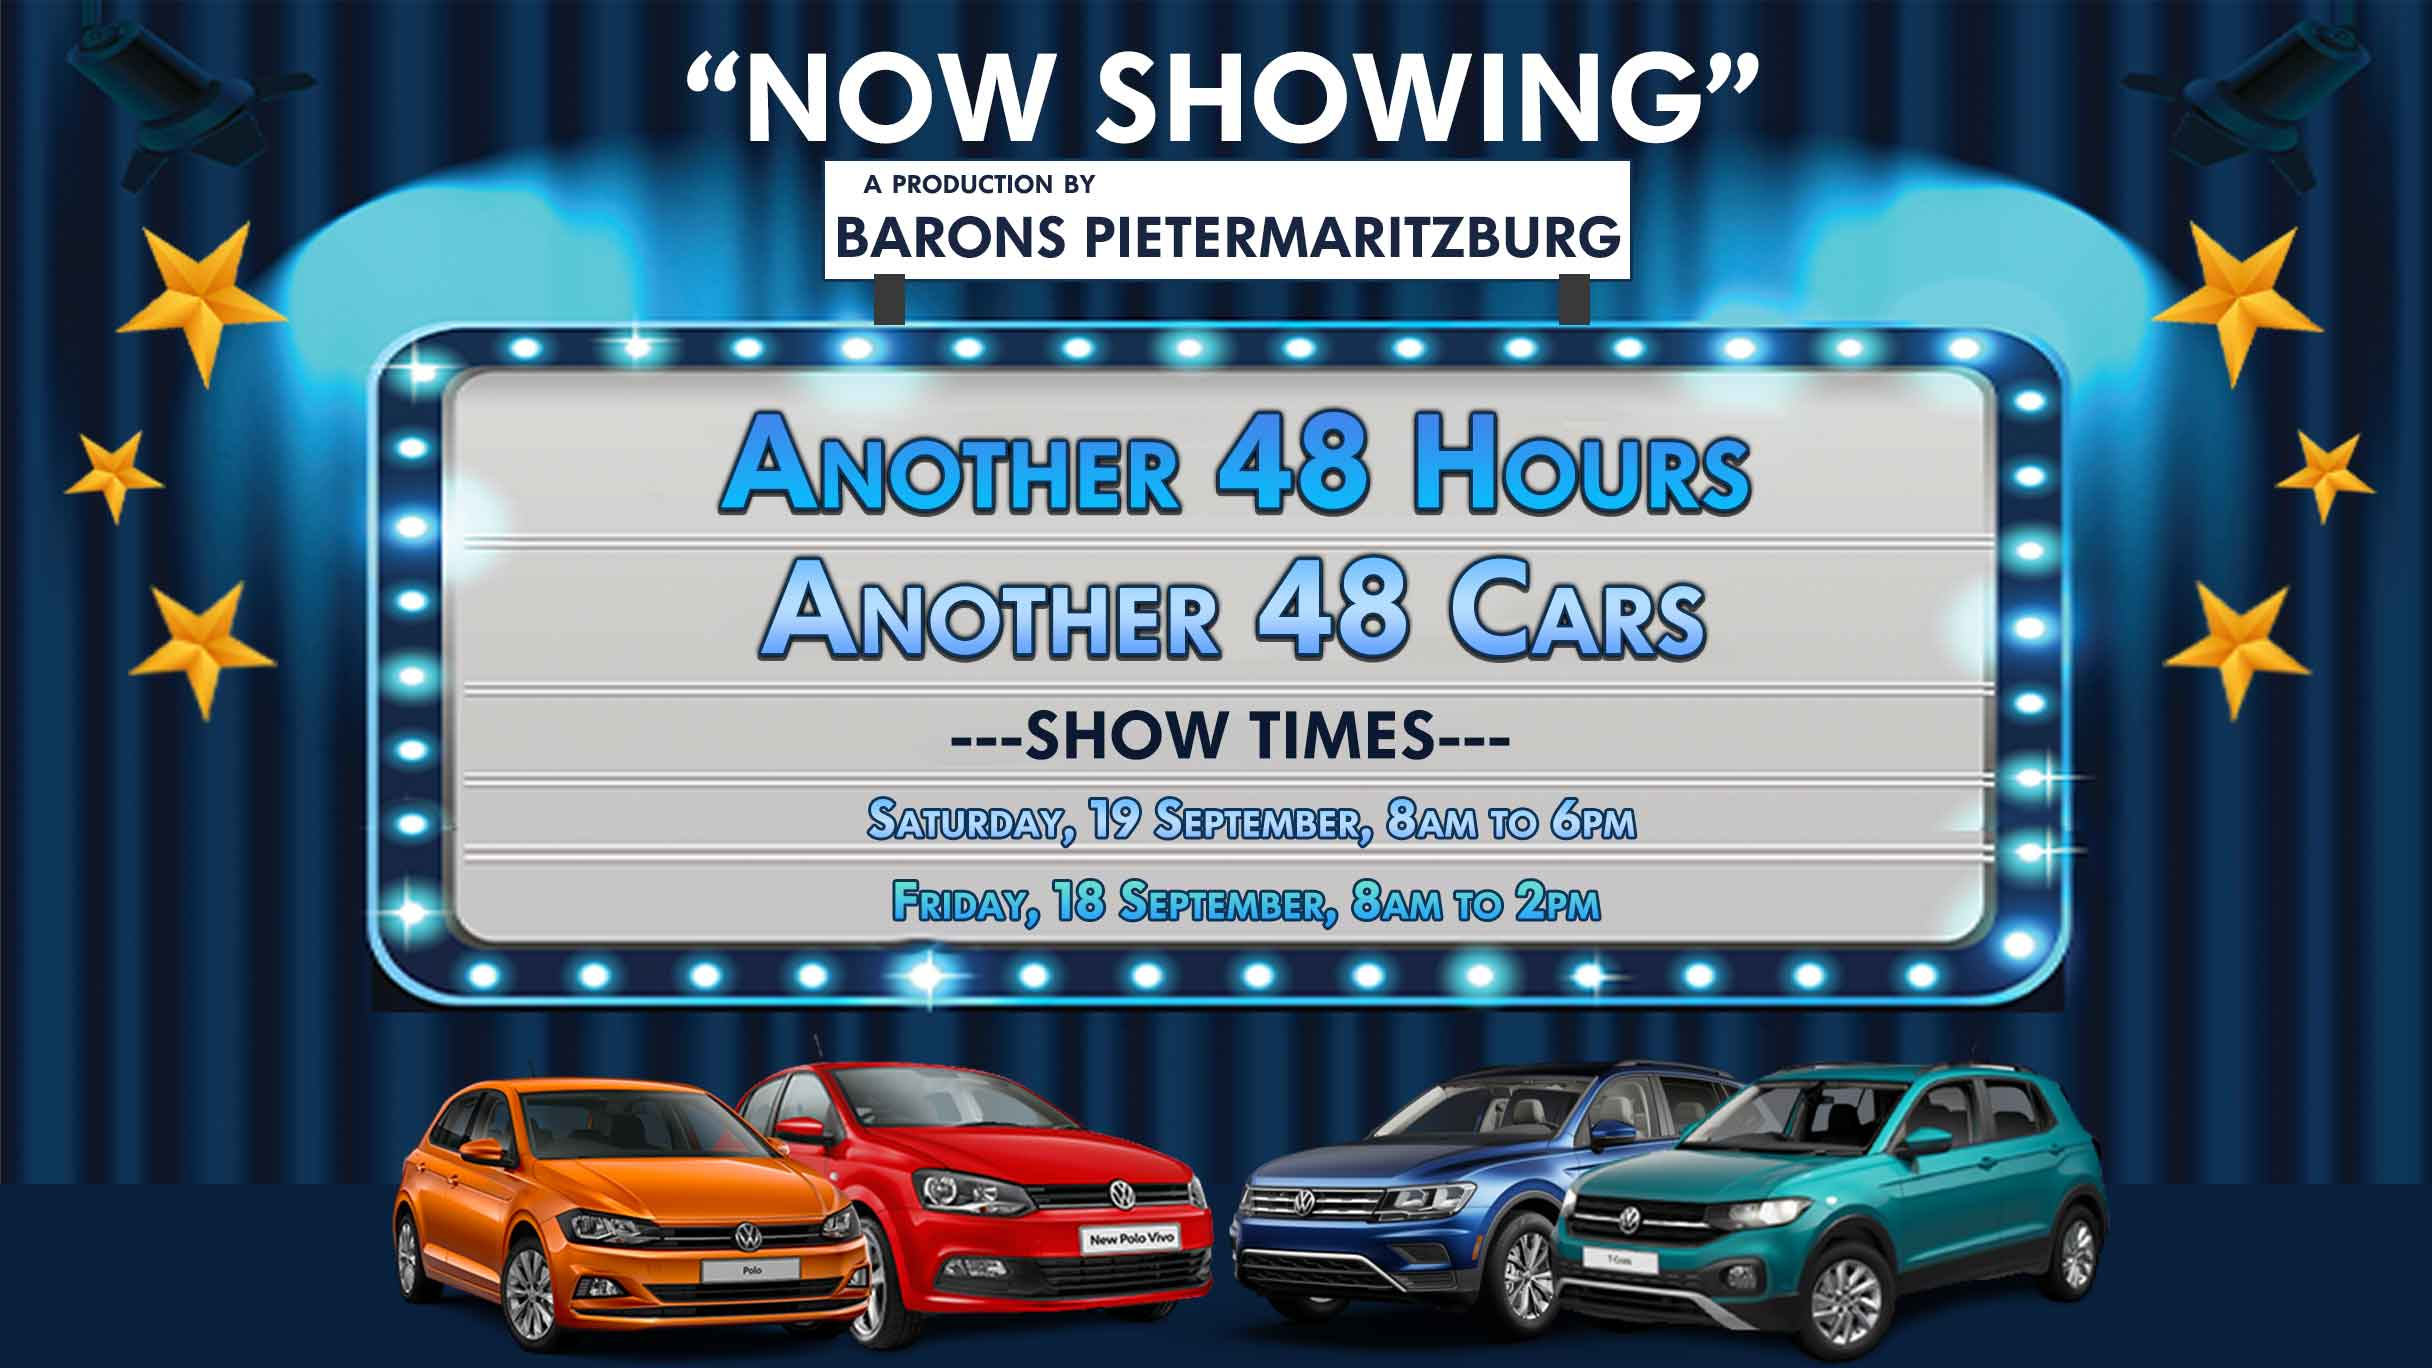 Barons PMB 48 cars, 48 hours